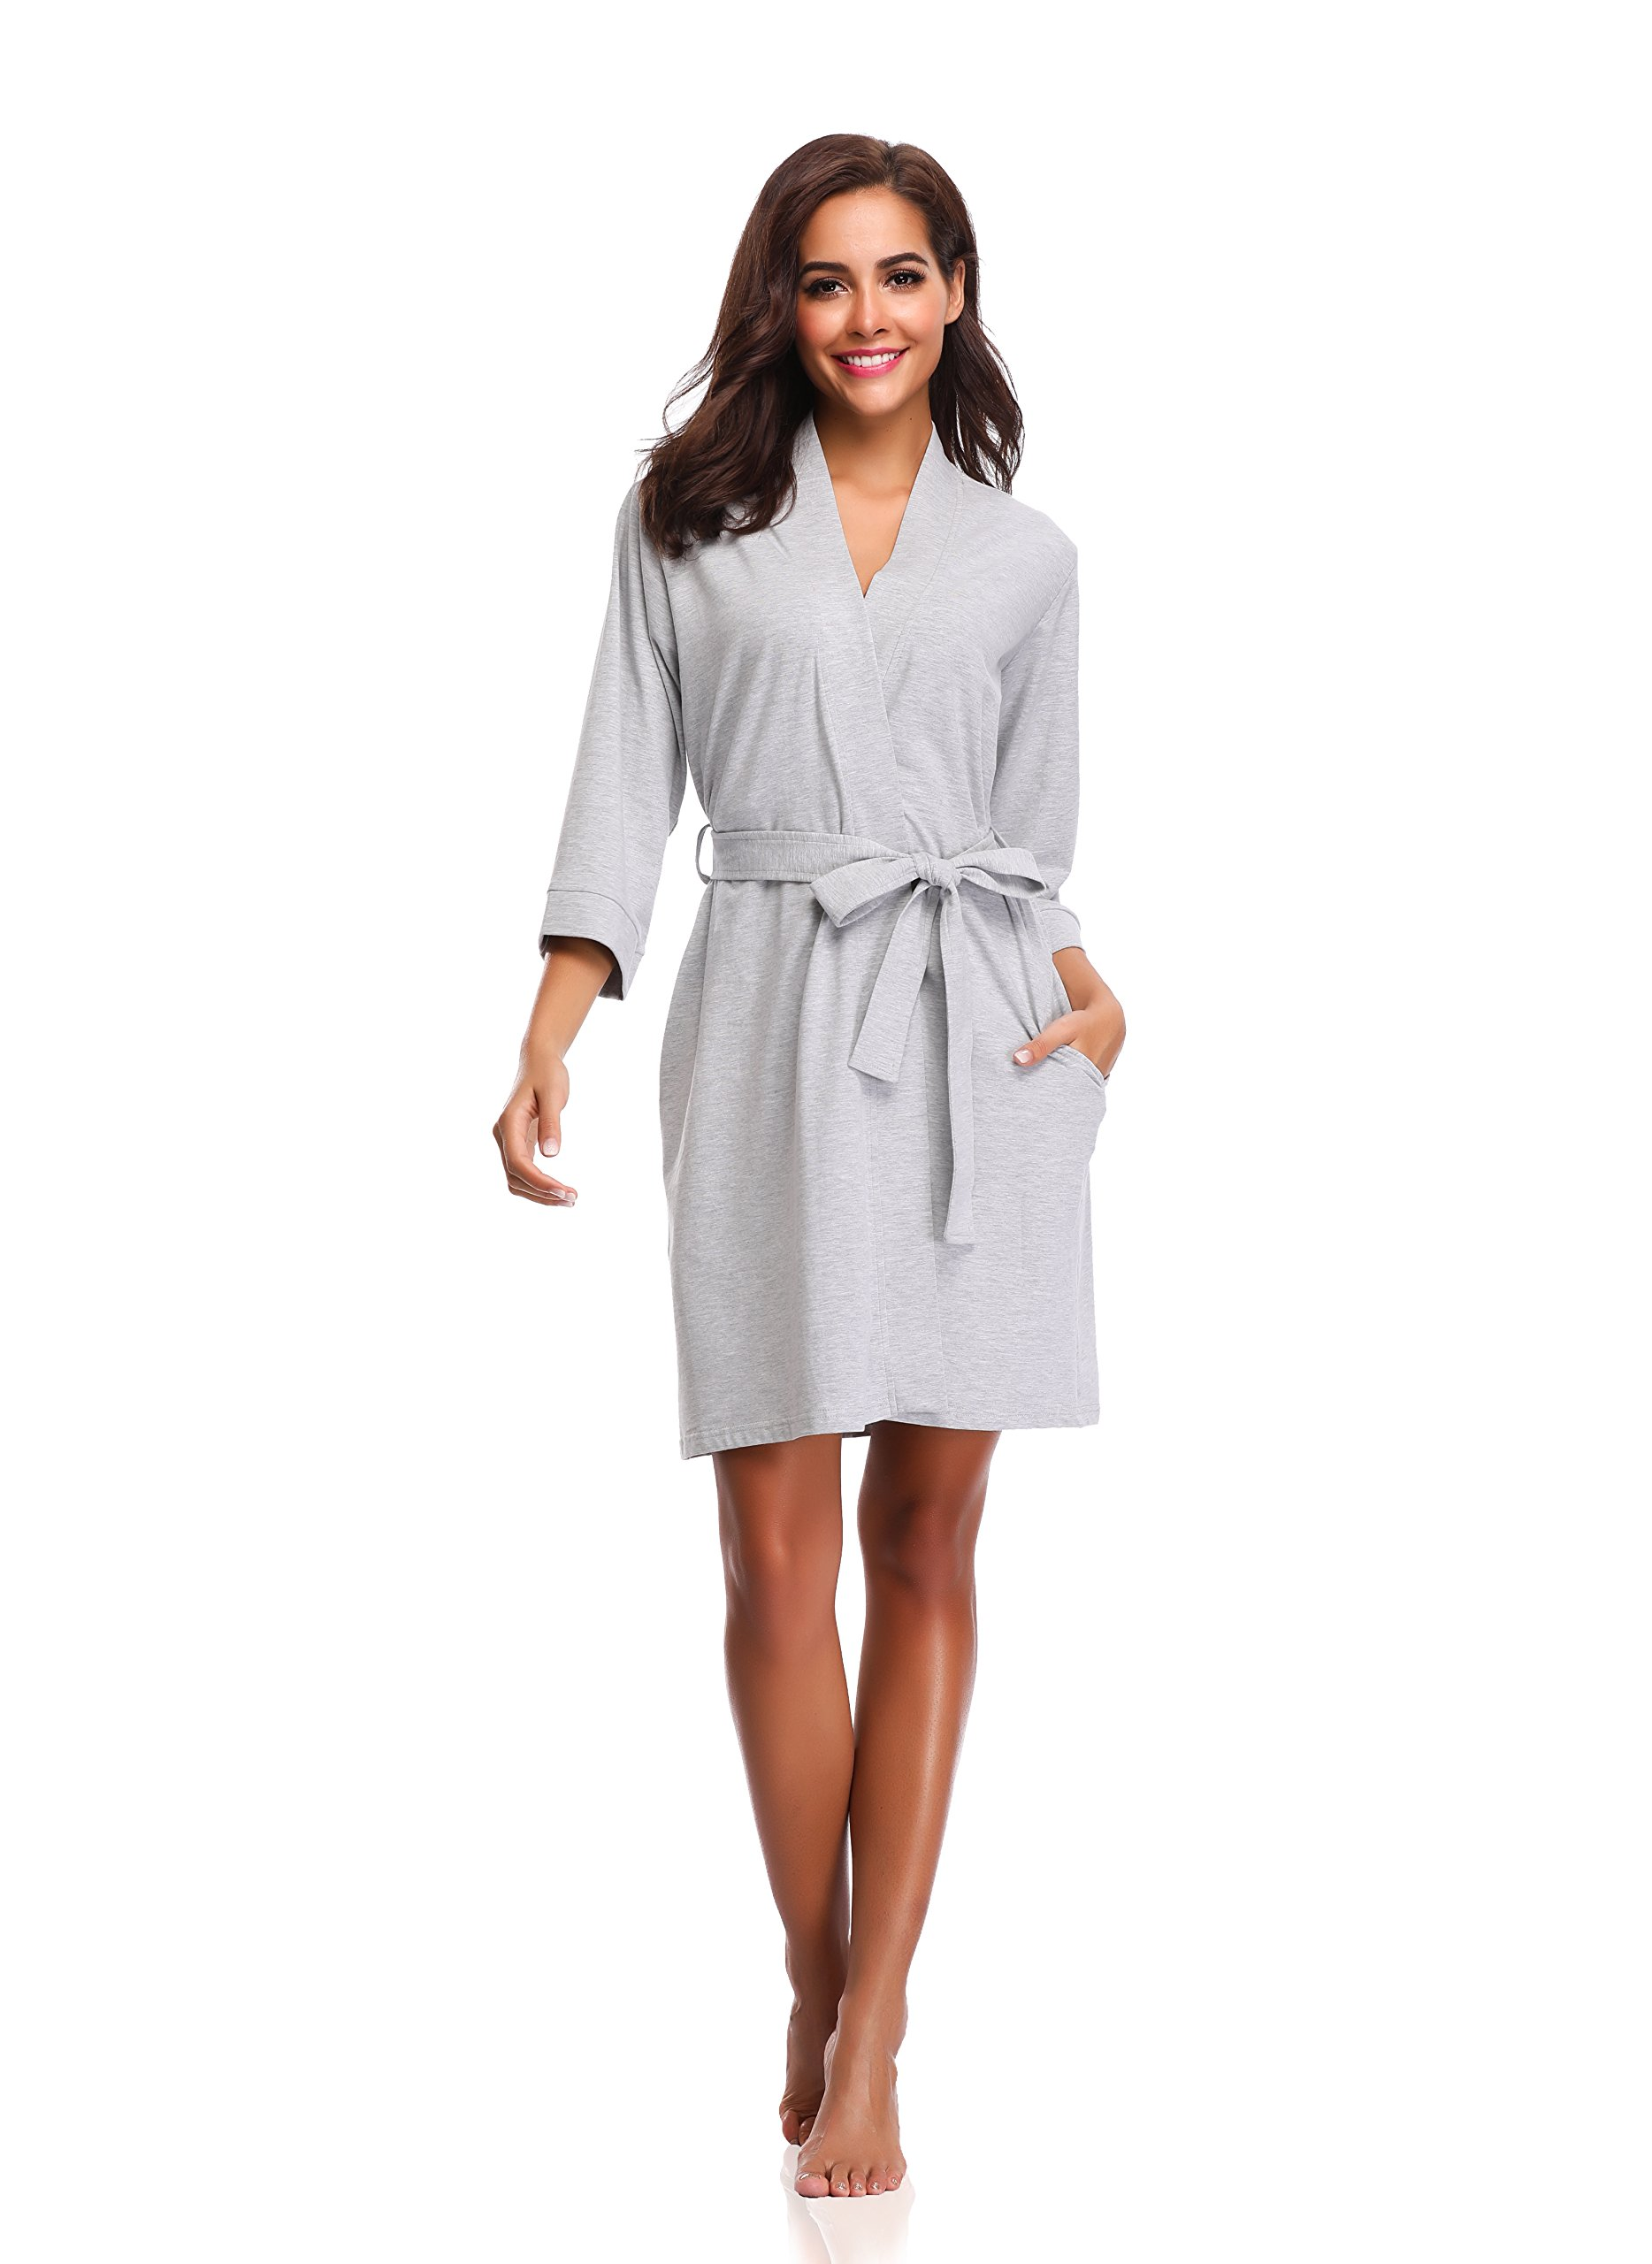 Luvrobes Women's Cotton Knit Kimono Robe (XL, Heather Grey)